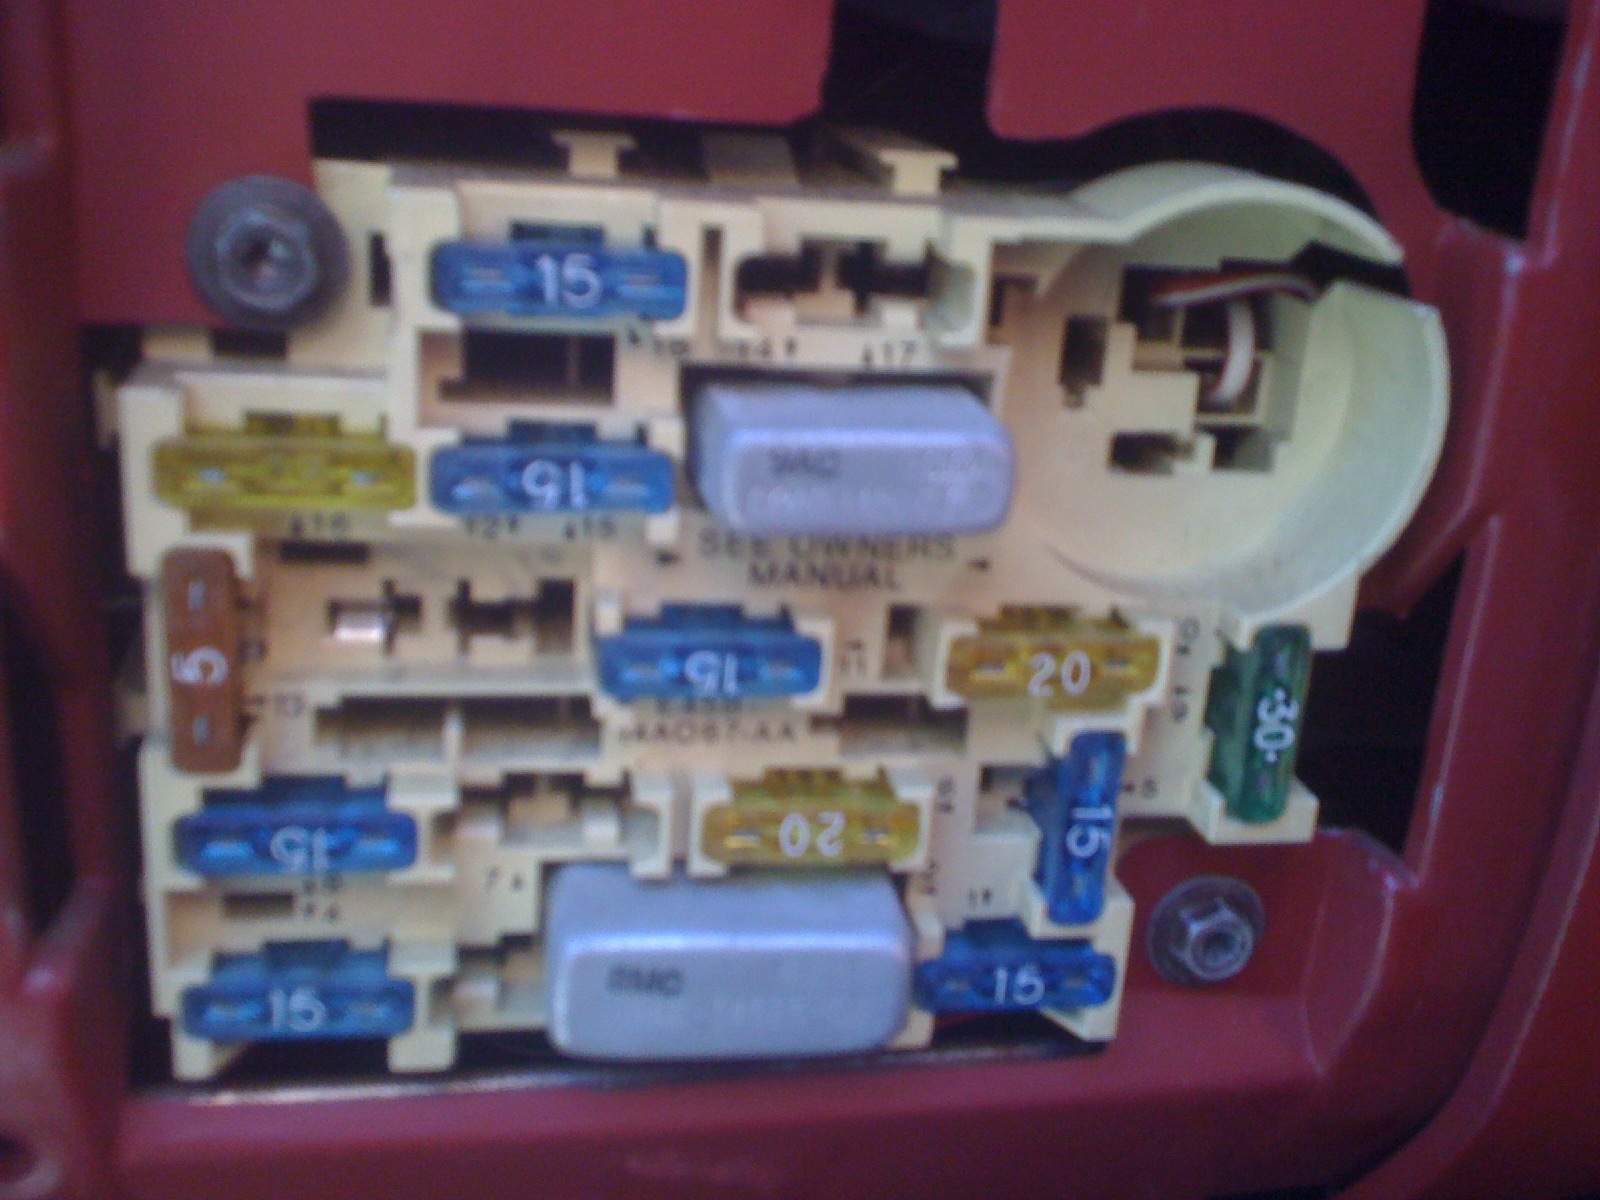 1989 mustang fuse box - wiring diagram wave-delta-a -  wave-delta-a.cinemamanzonicasarano.it  cinemamanzonicasarano.it